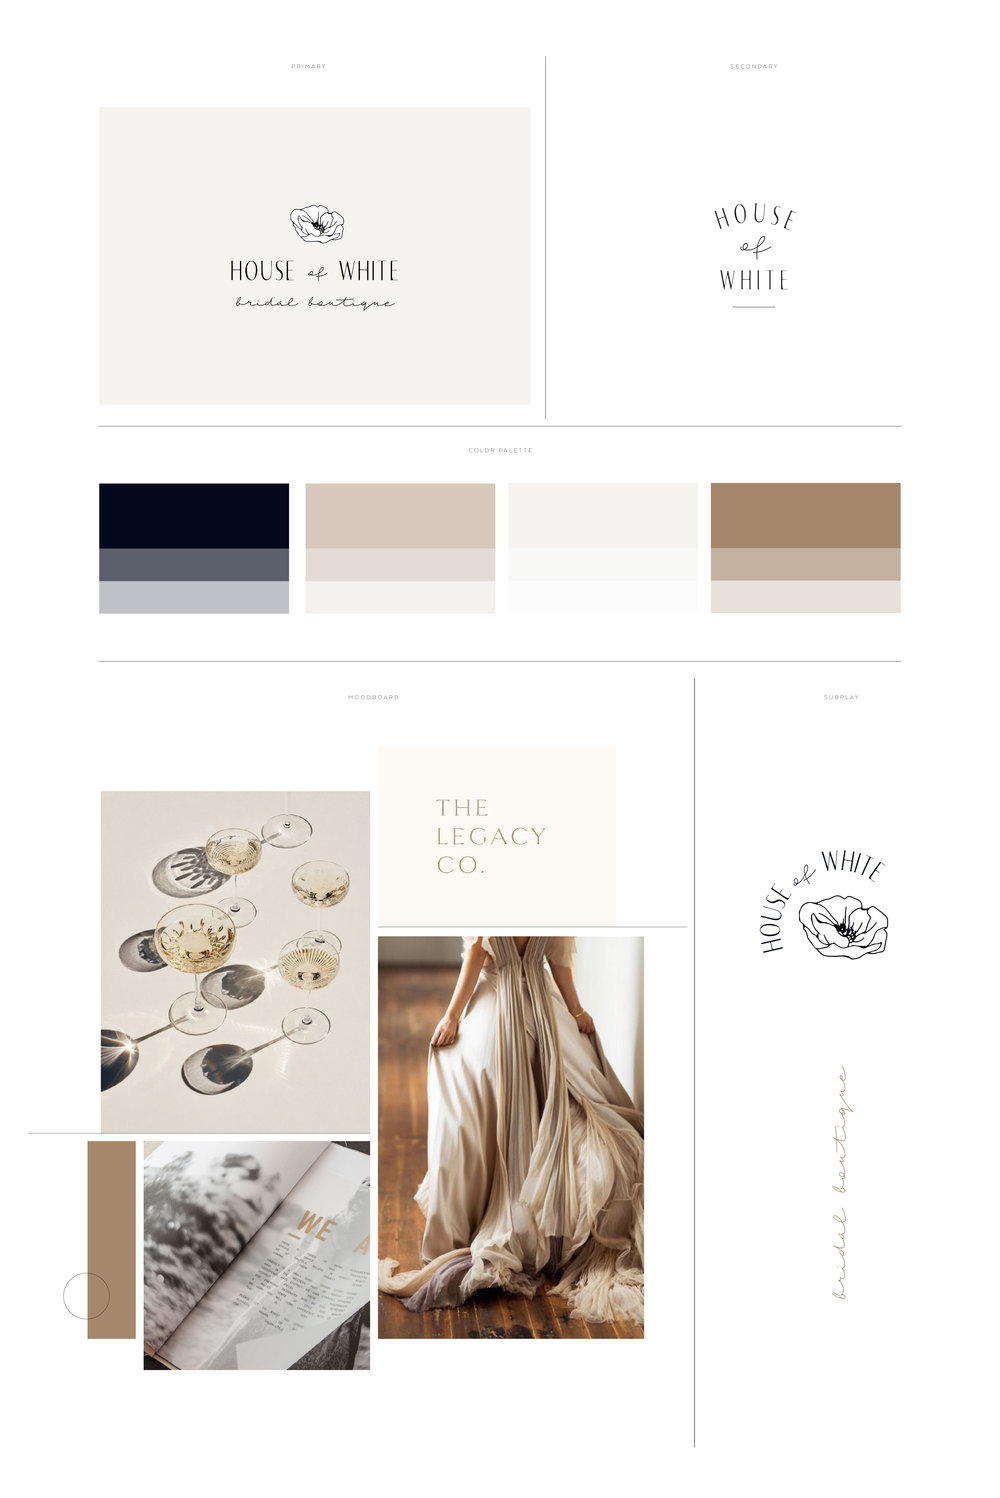 HOUSEOFWHITE_HONOR_BRANDBOARD_02.jpg